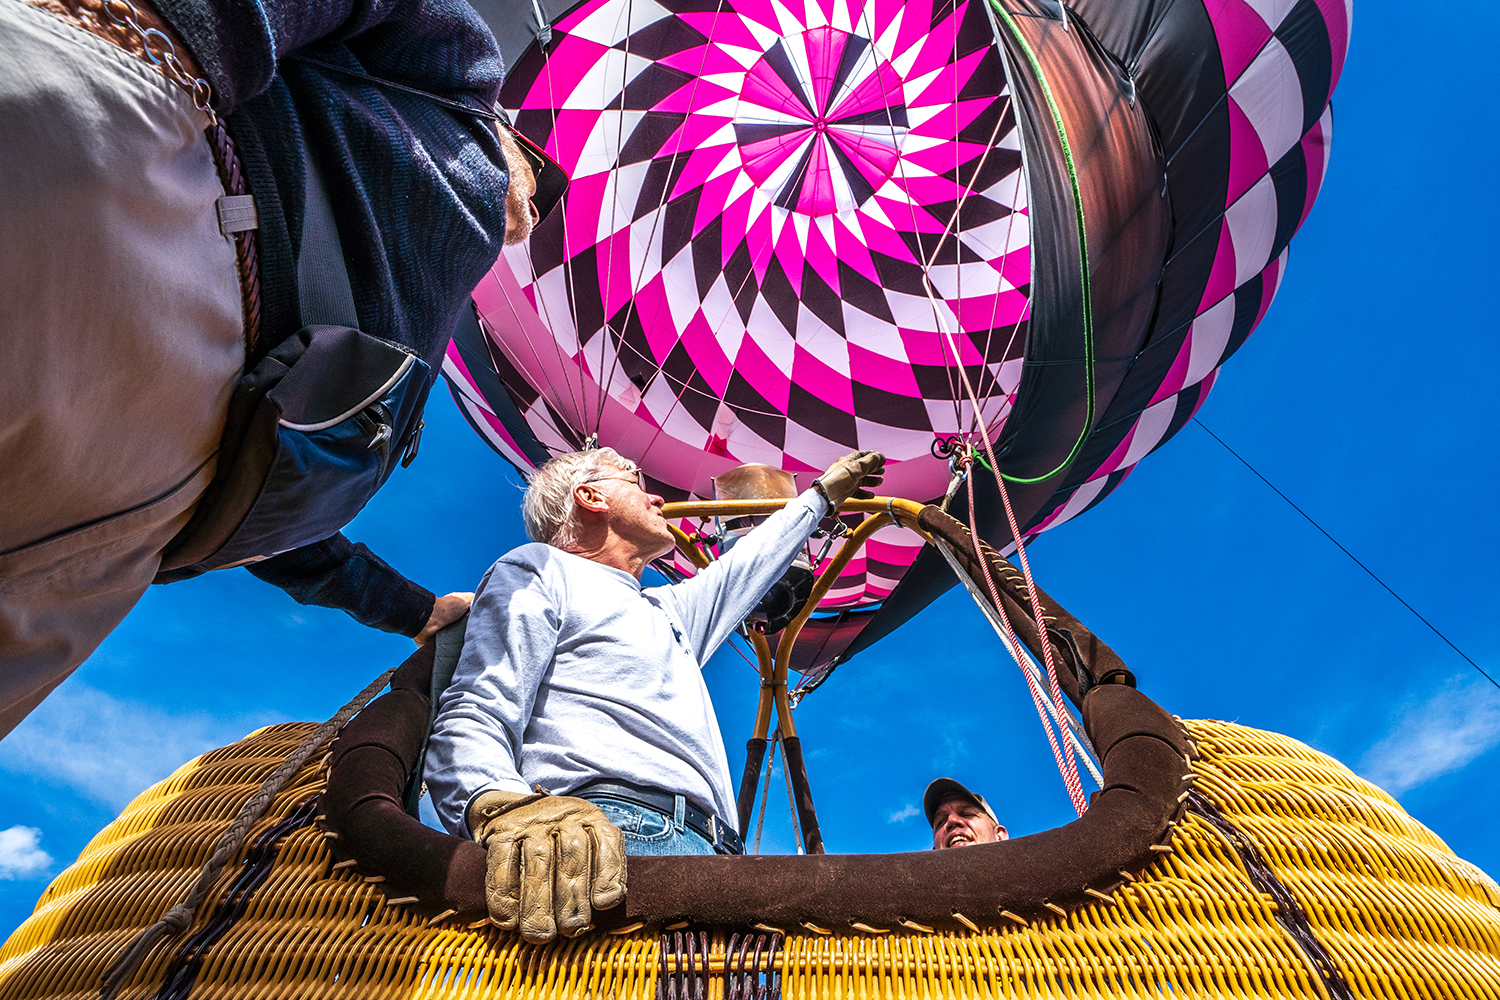 Hot air ballon festival in Steamboat Springs